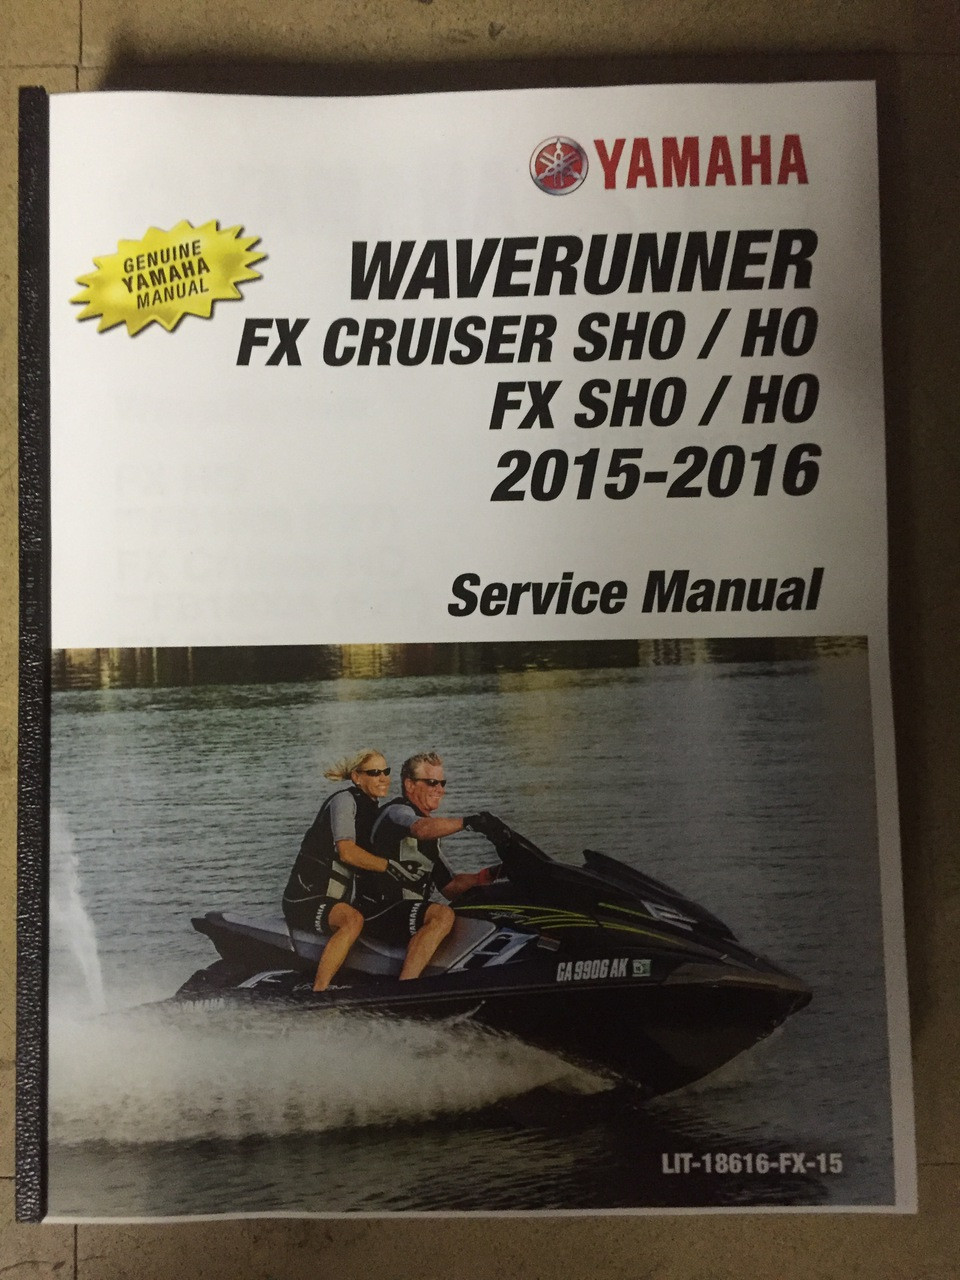 2015 2016 yamaha waverunner fx cruiser sho fx crsuier ho fx sho rh service shop repair manual com 2011 yamaha waverunner fx cruiser sho owners manual 2004 yamaha fx cruiser ho owner's manual